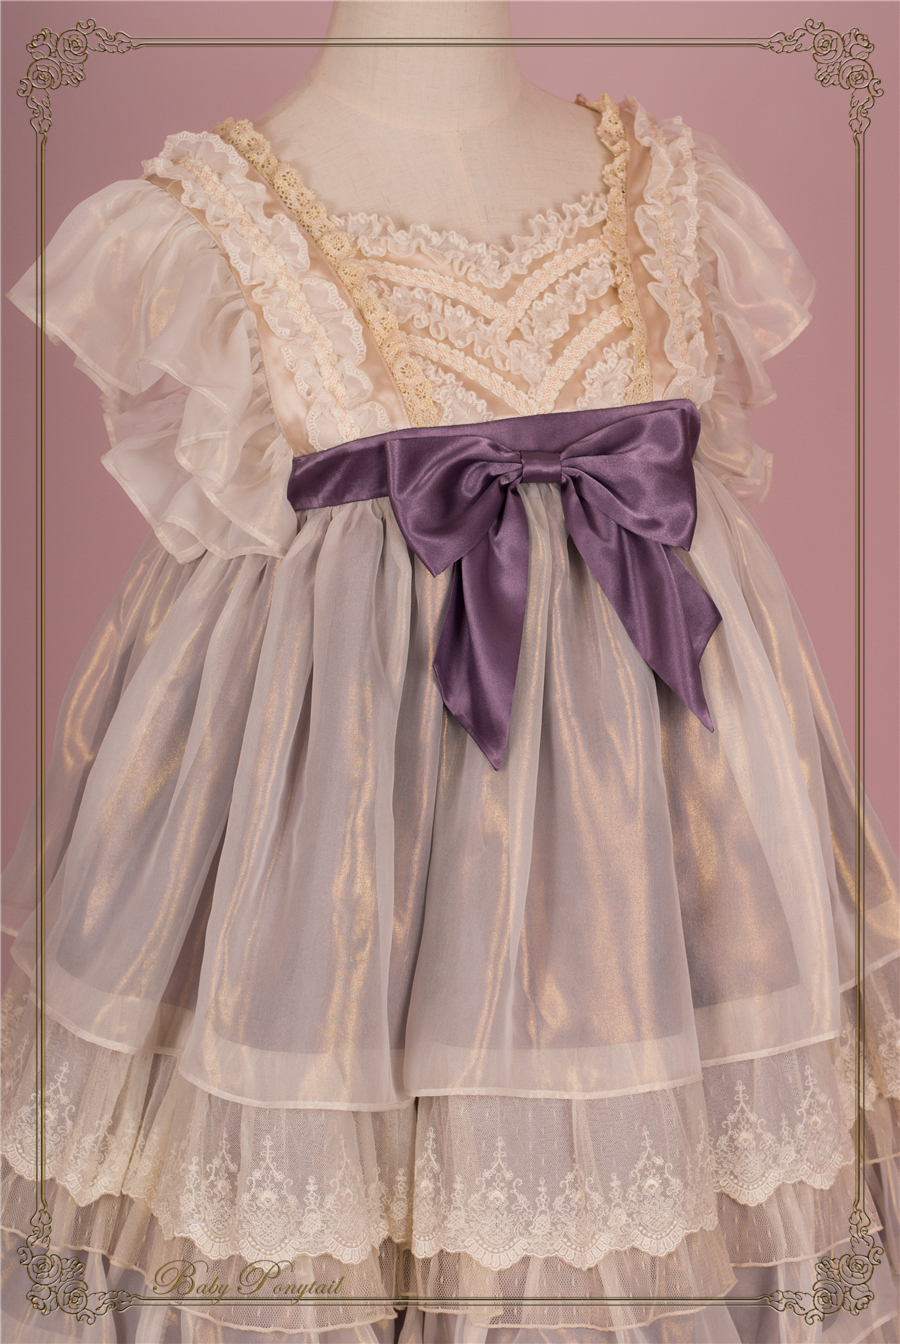 Babyponytail_Stock Photo_Present Angel_JSK Lavender_10.jpg